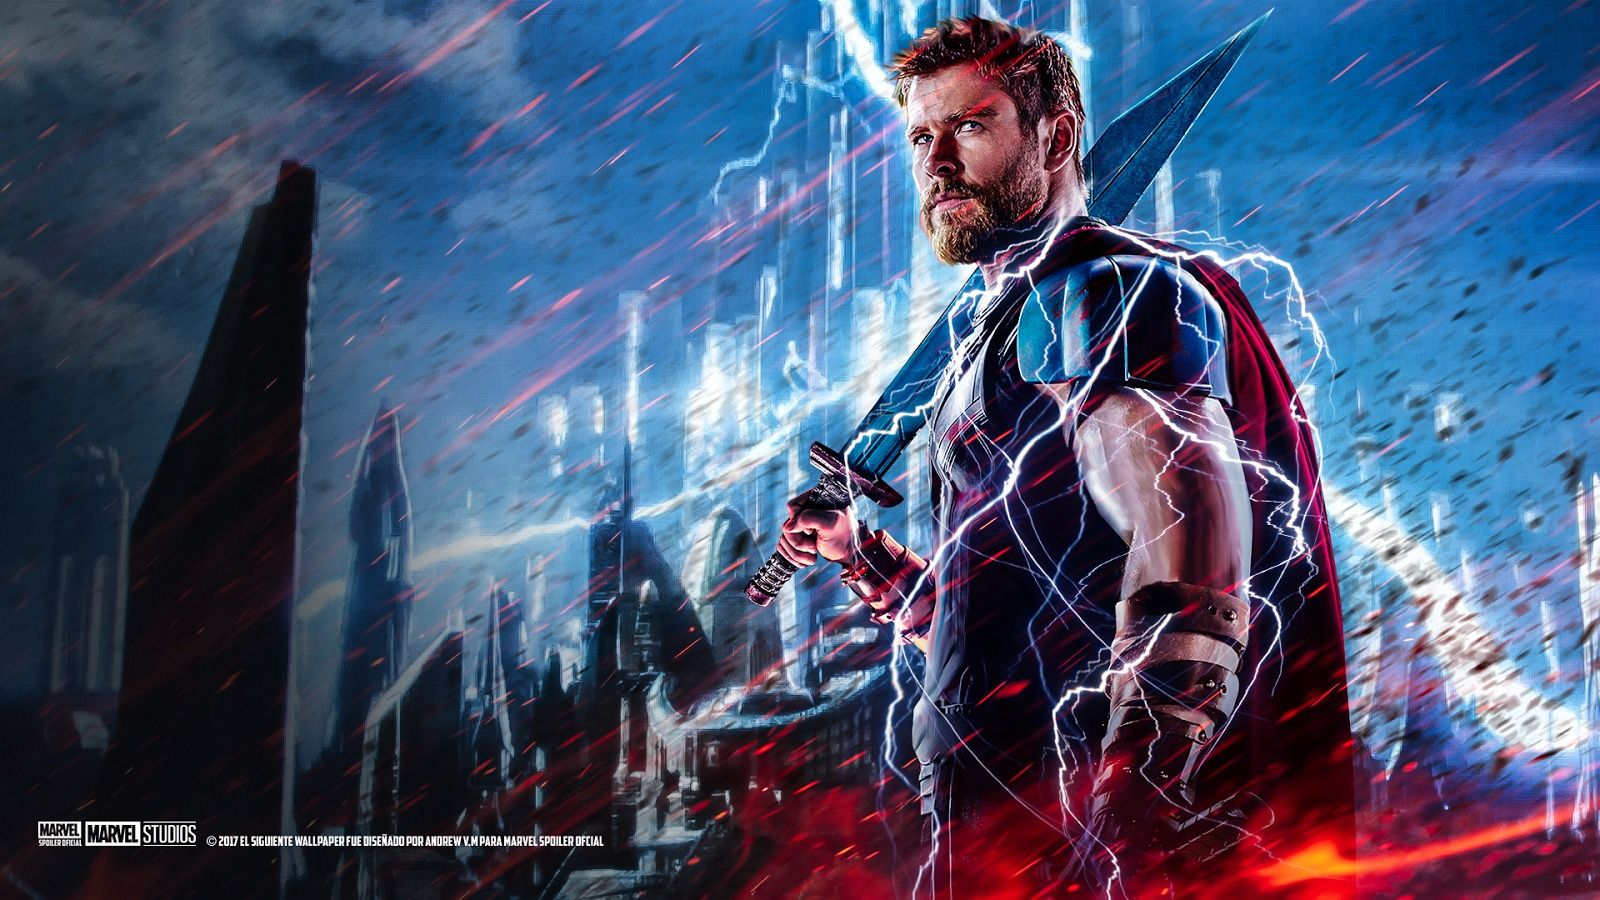 Who Is The Strongest Avenger Of All Marvel Cinematic Universe Marvel Comics Avengers Infinitywar Thor H Thor Wallpaper Marvel Thor Thor Ragnarok Movie